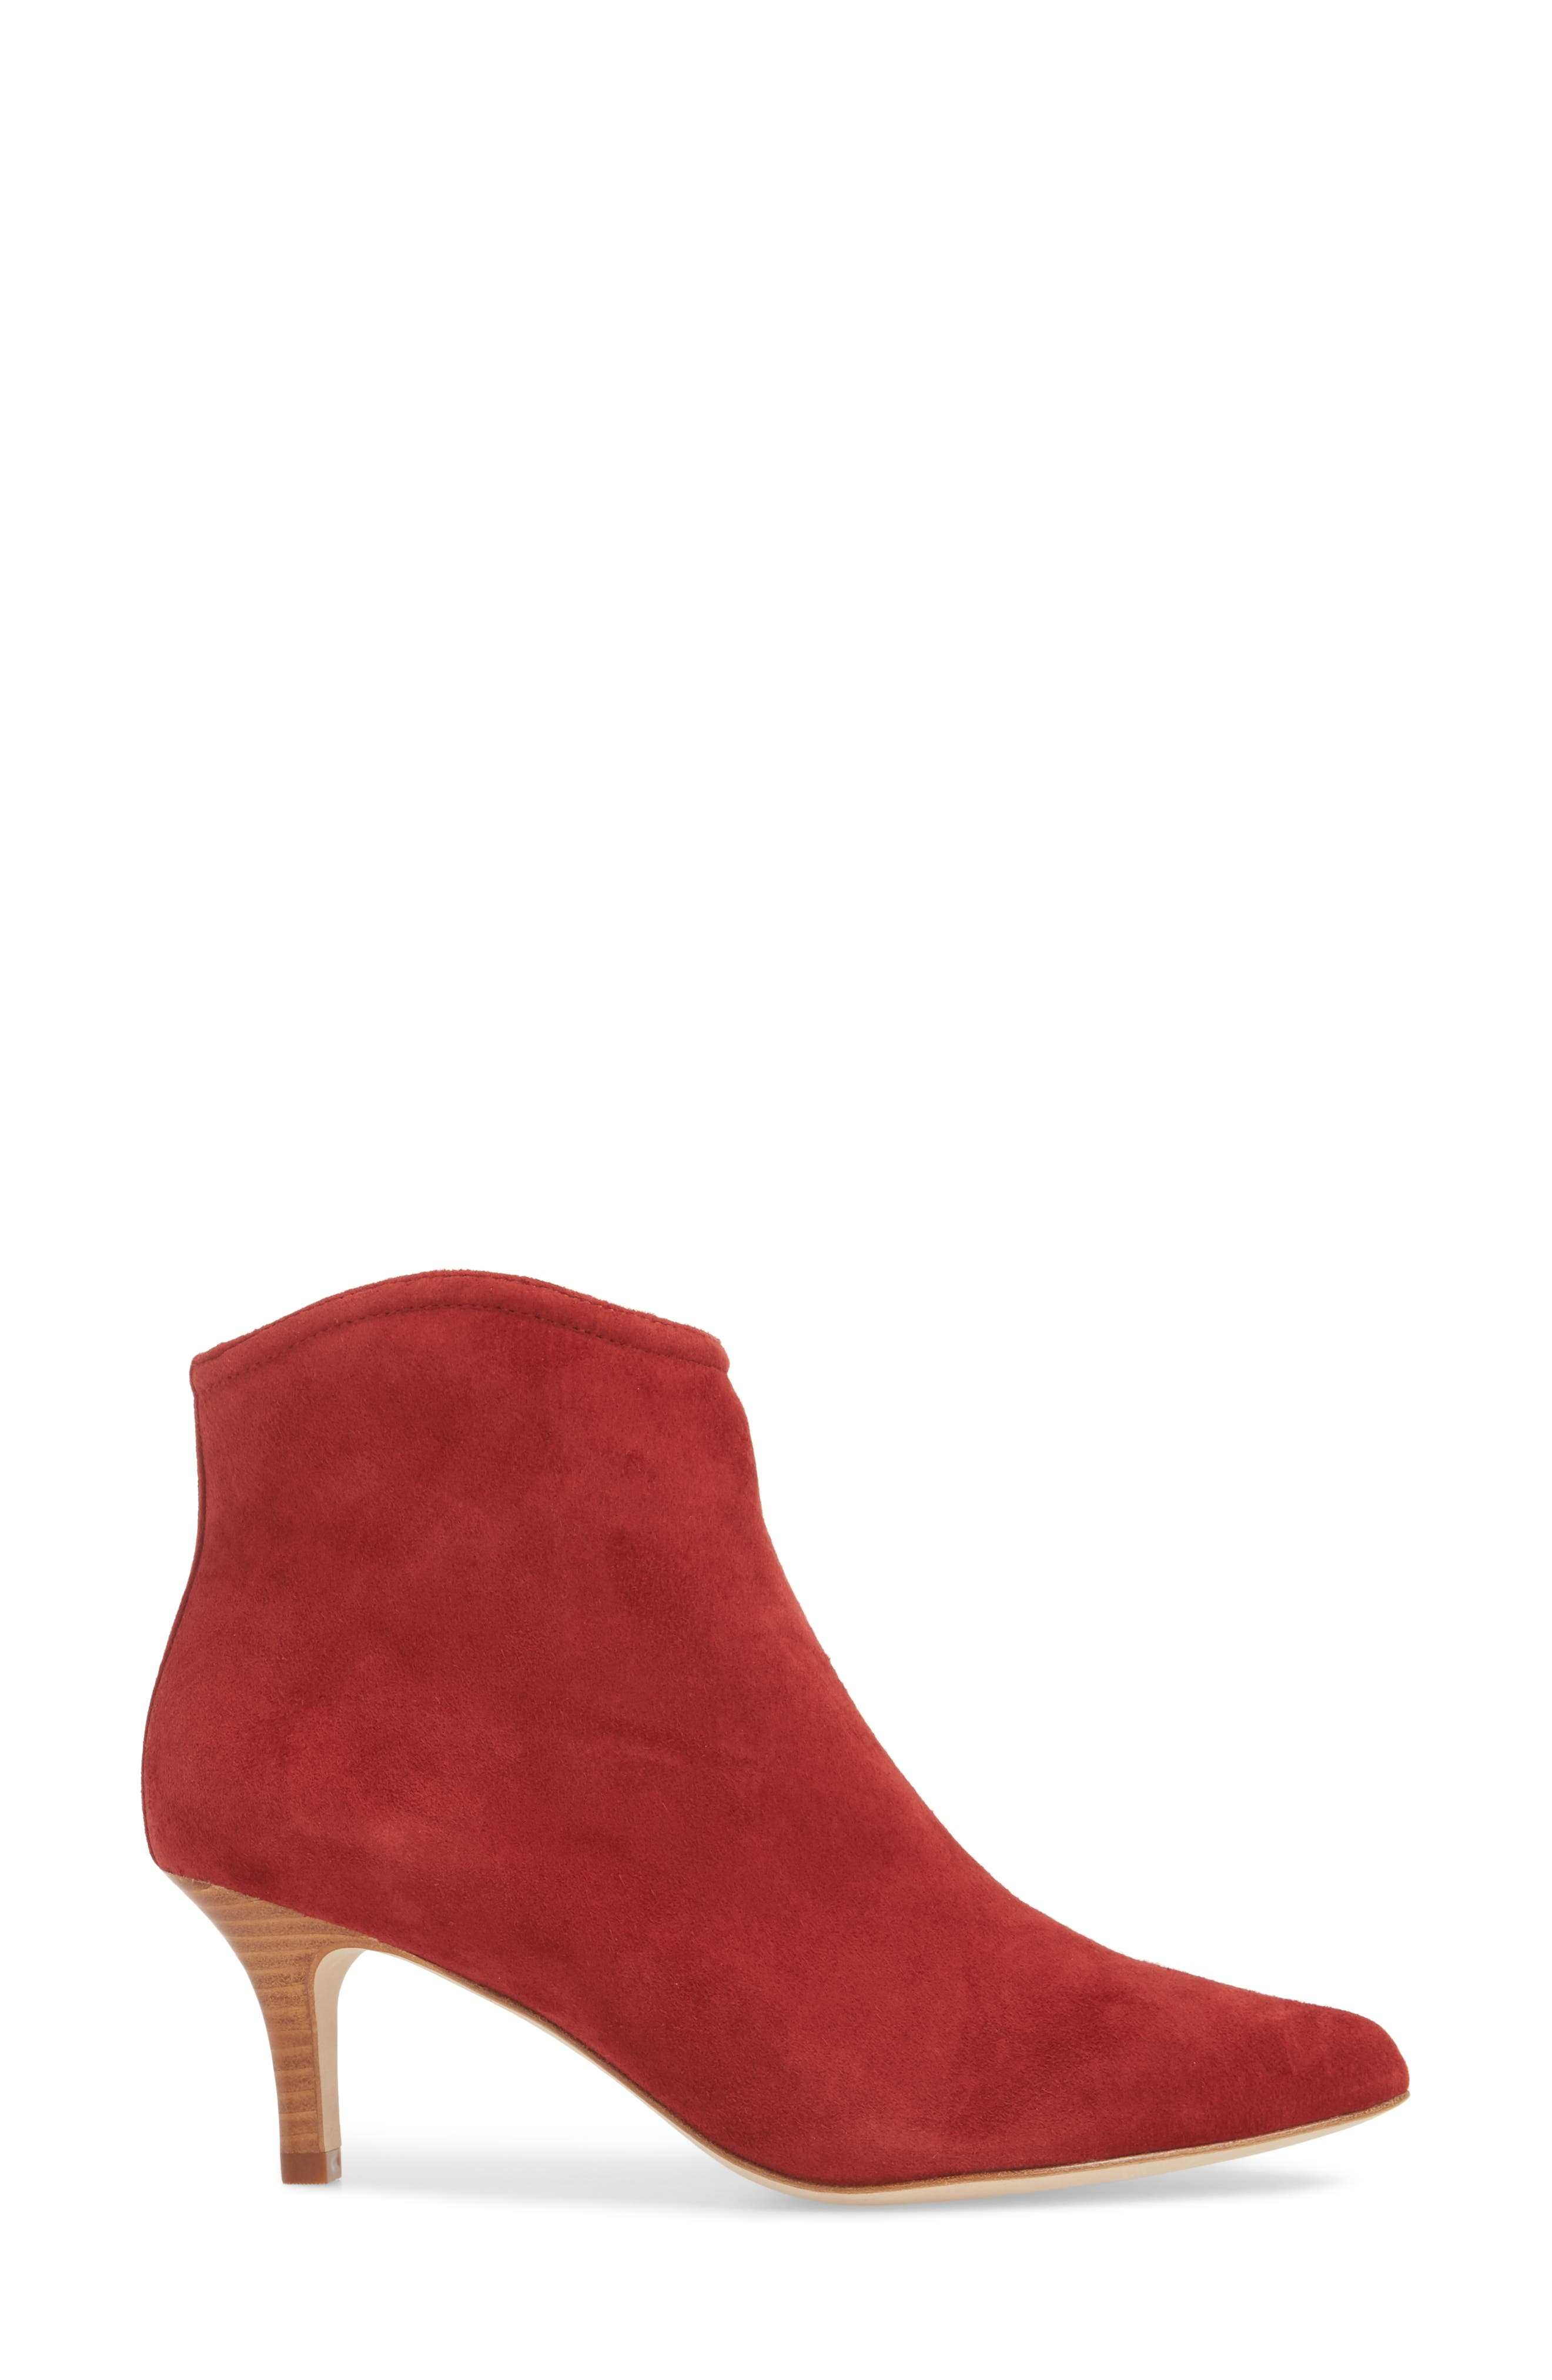 Ralean Almond Toe Bootie,                             Alternate thumbnail 3, color,                             Currant